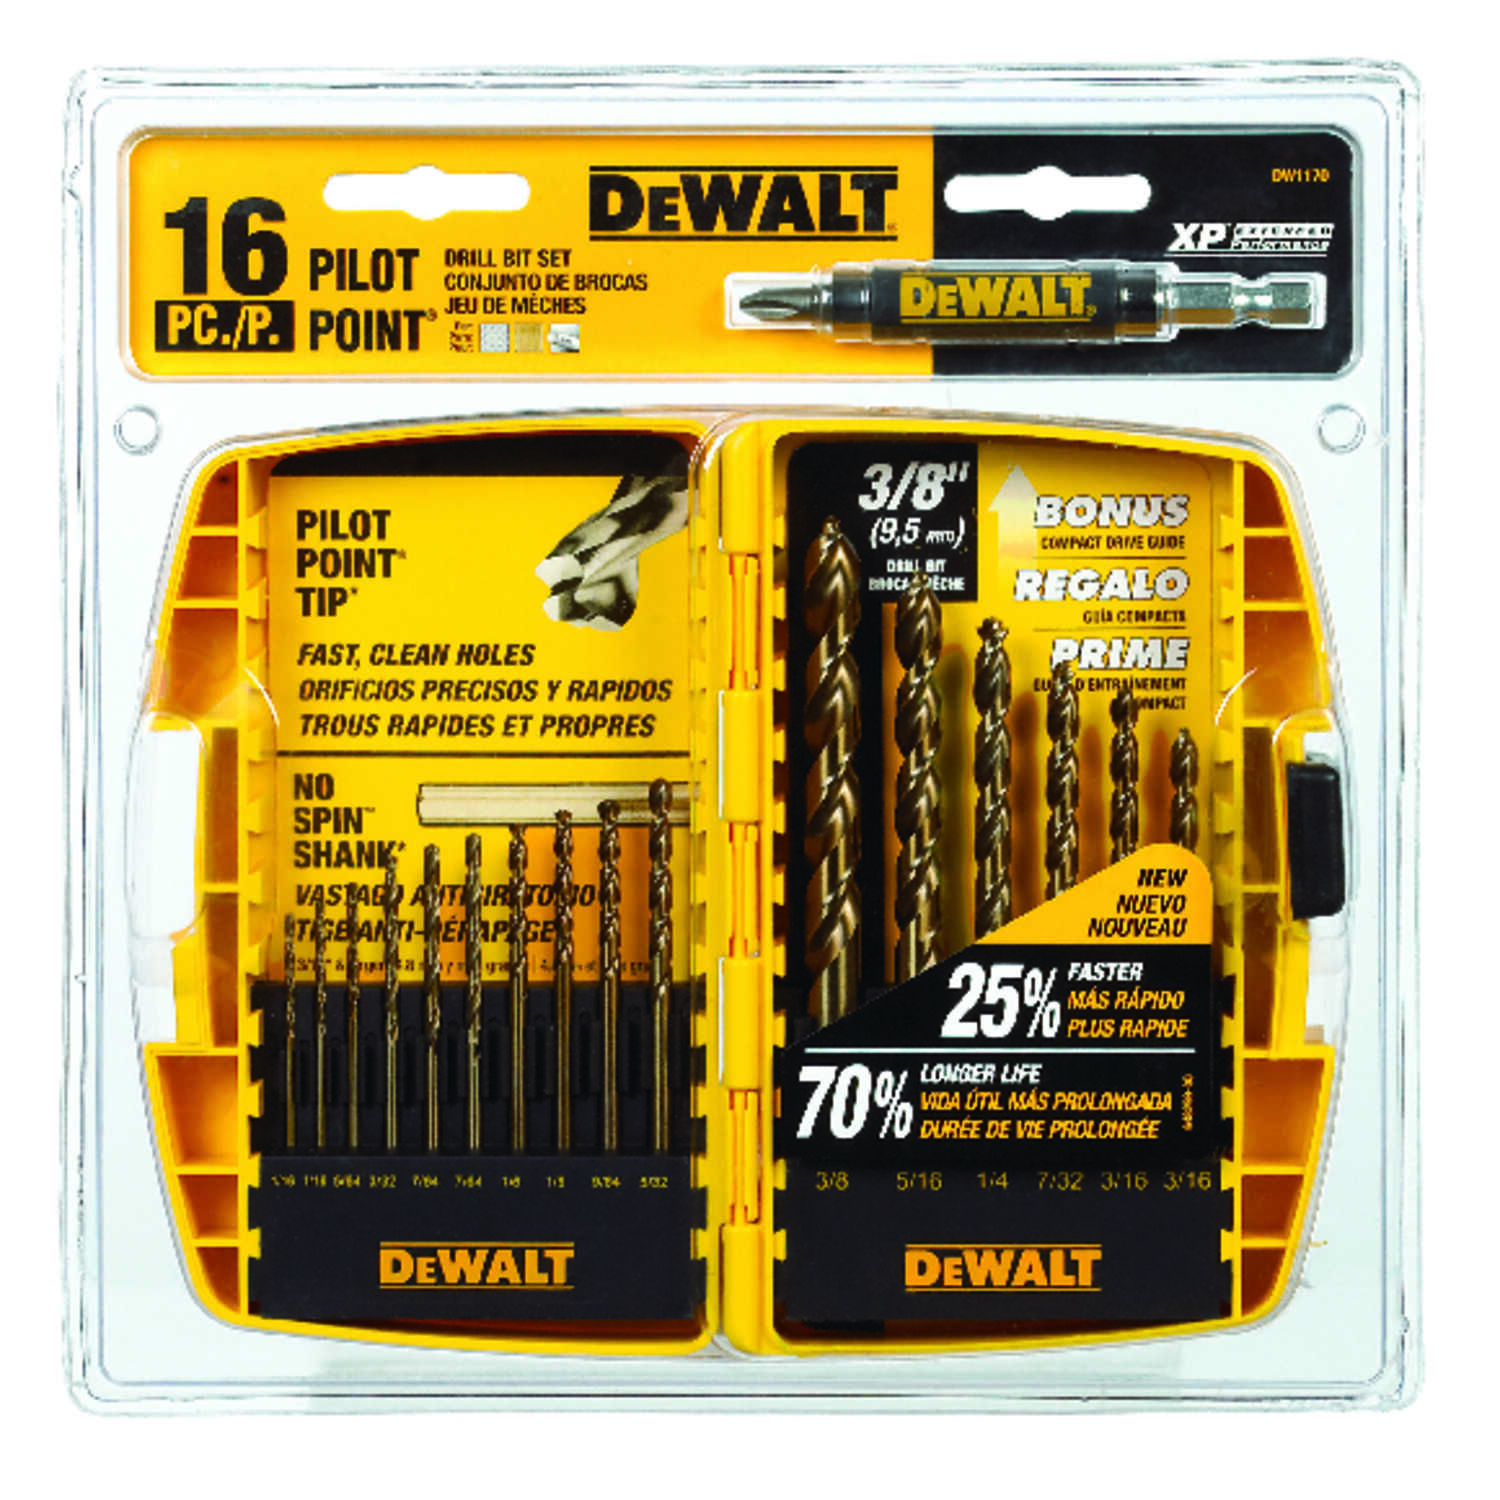 DeWalt  Pilot Point  Multi Size in. Dia. x Multi  L Ferrous Oxide  Drill Bit Set  16 pc. Round Shank